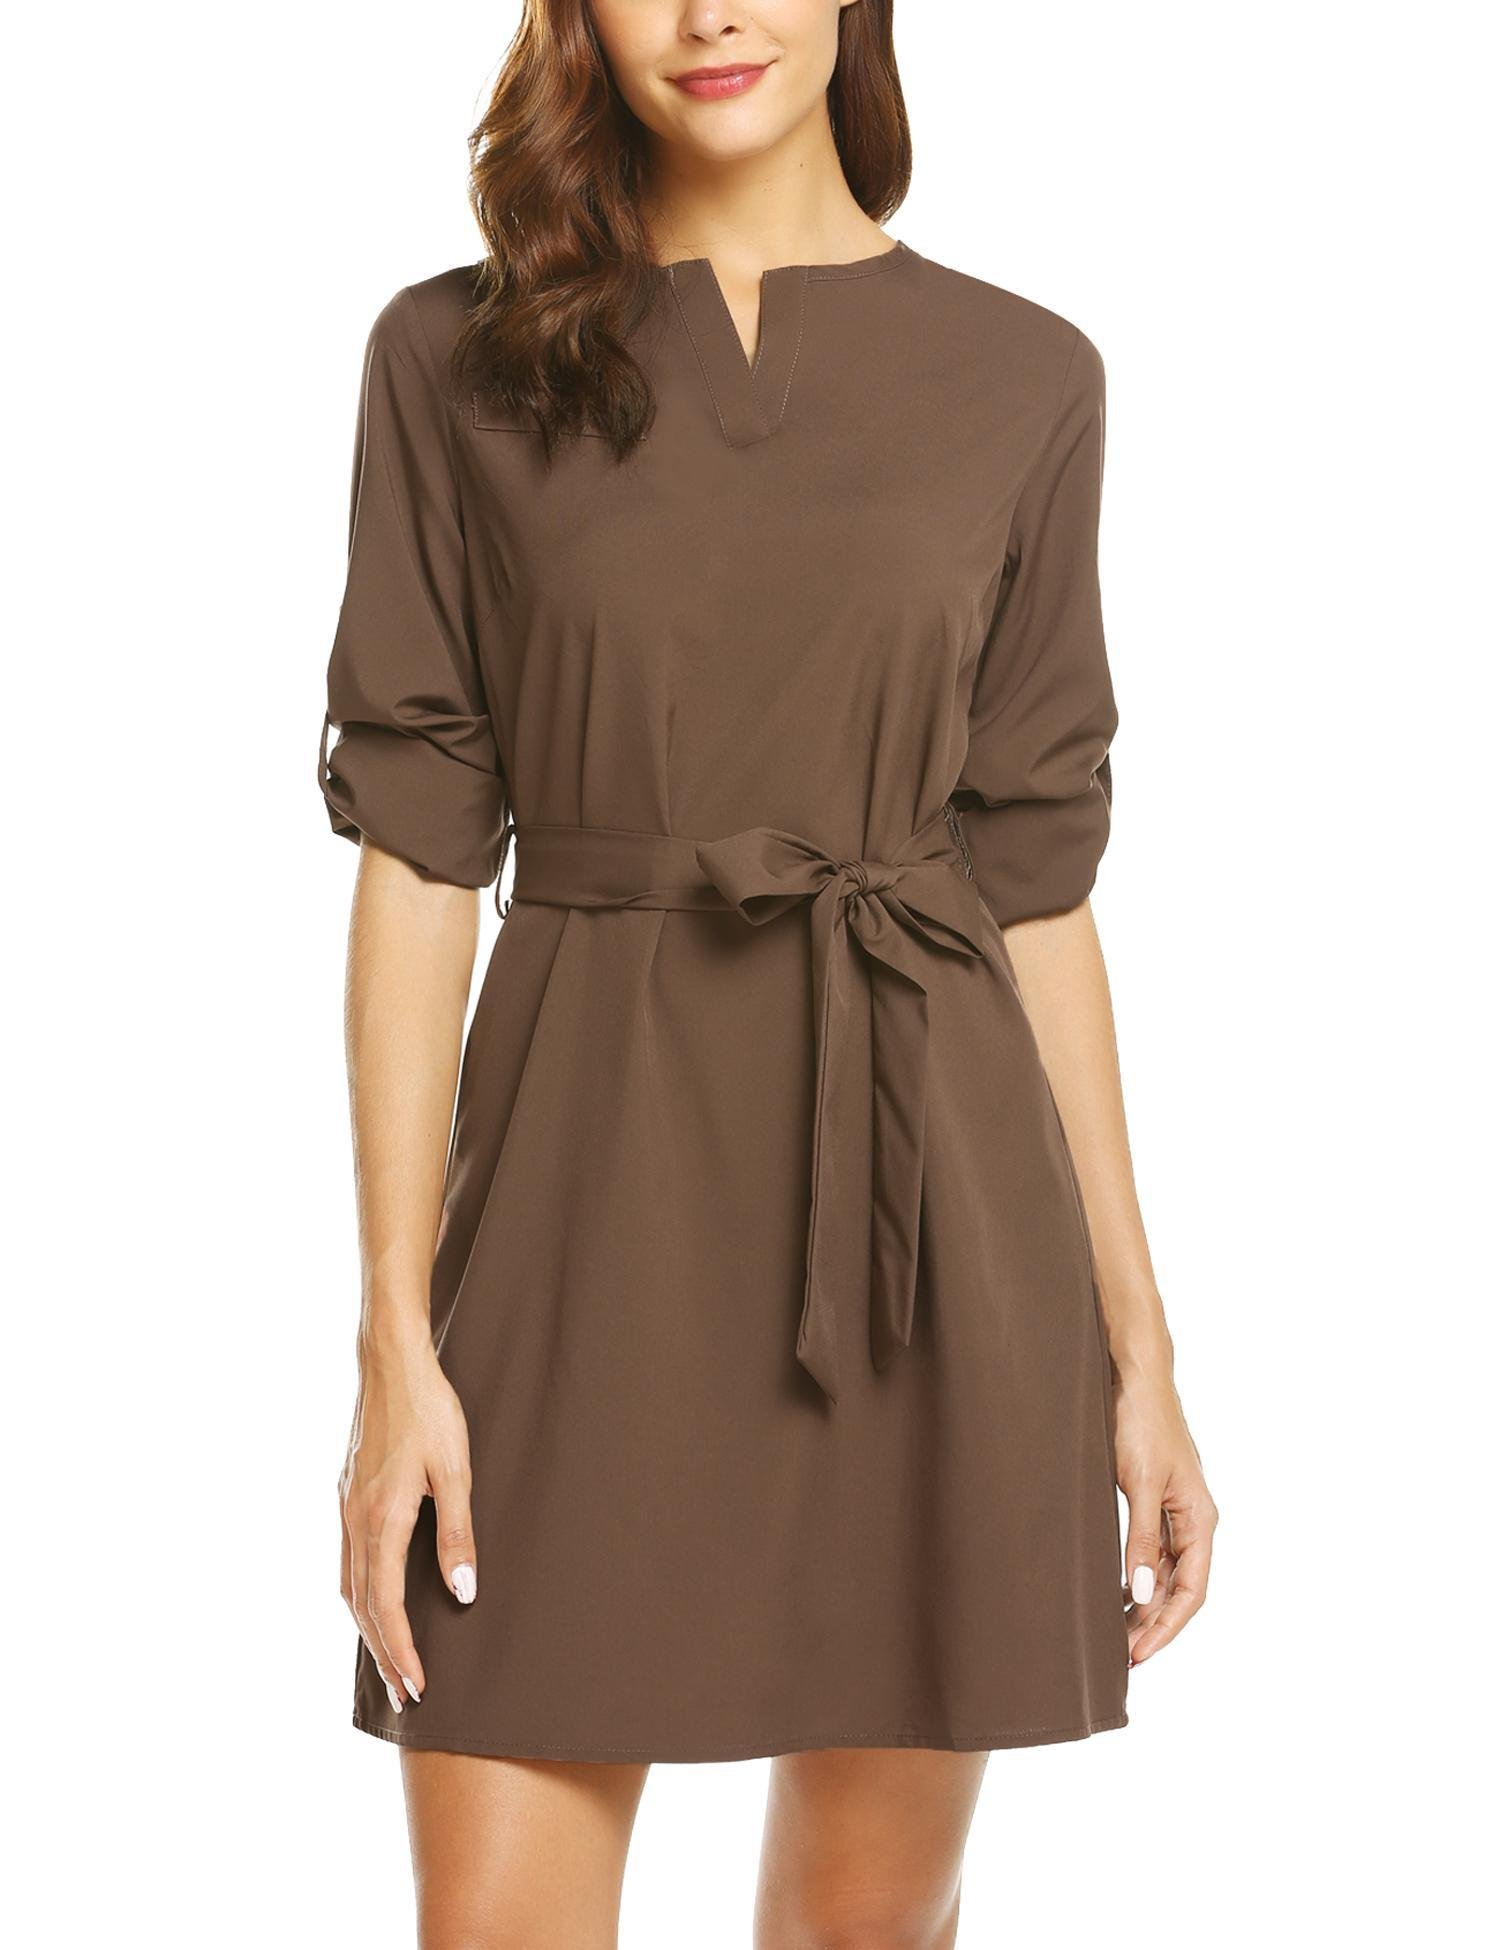 SE MIU Women Loose Solid Work Belted Office Crew Neck Shirt Dress, Brown, M